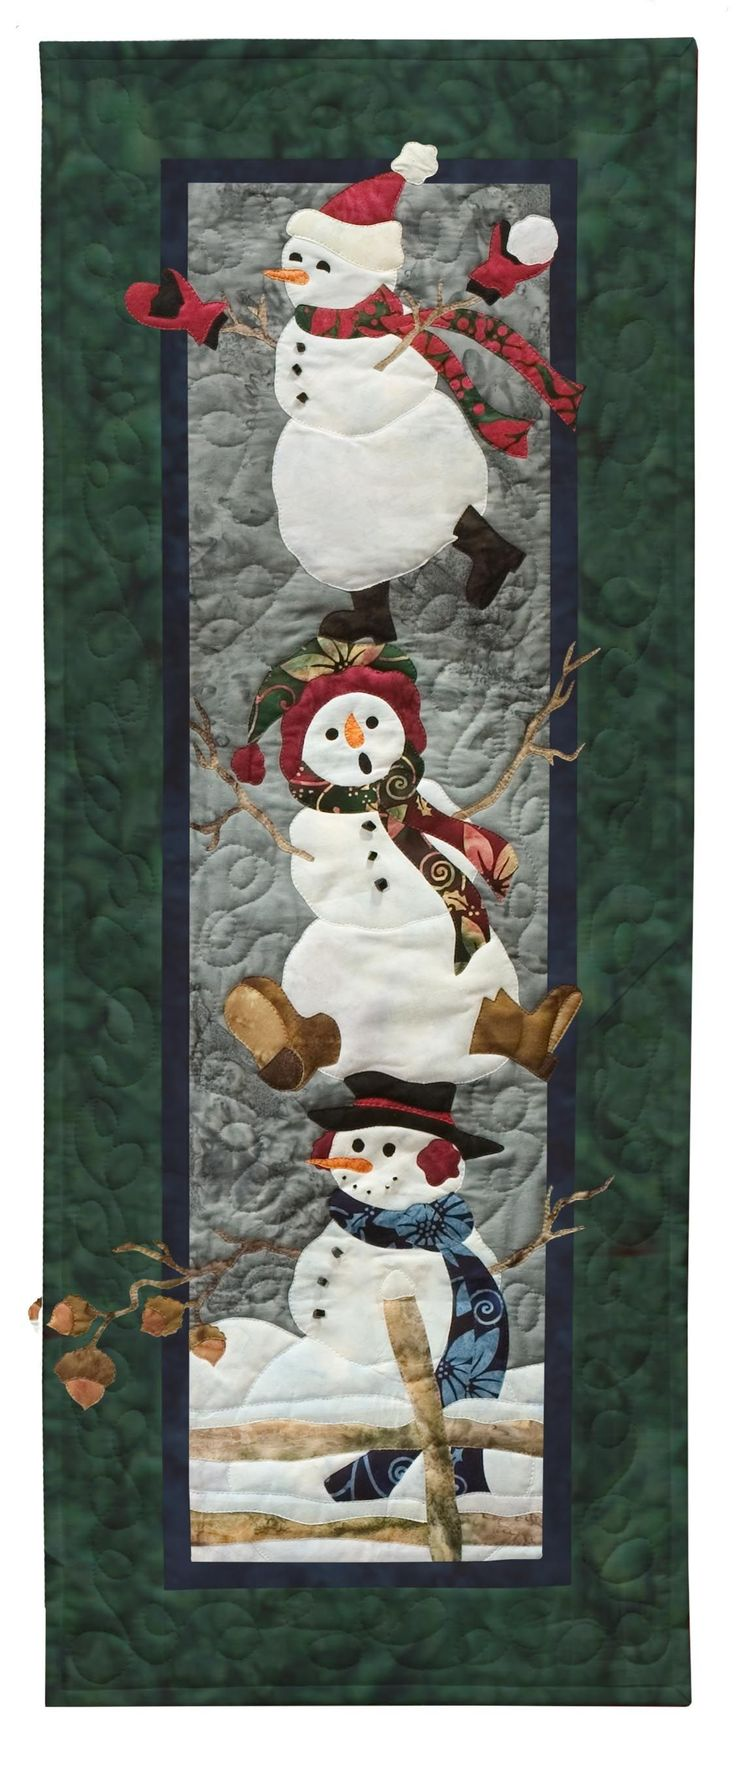 Pine Needles Designs specializes in Applique Quilt Patterns. McKenna Ryan's pioneering 'Simple and Easy' fusible web method changed the quilting industry and delivers unmatched artistry to every quilter!